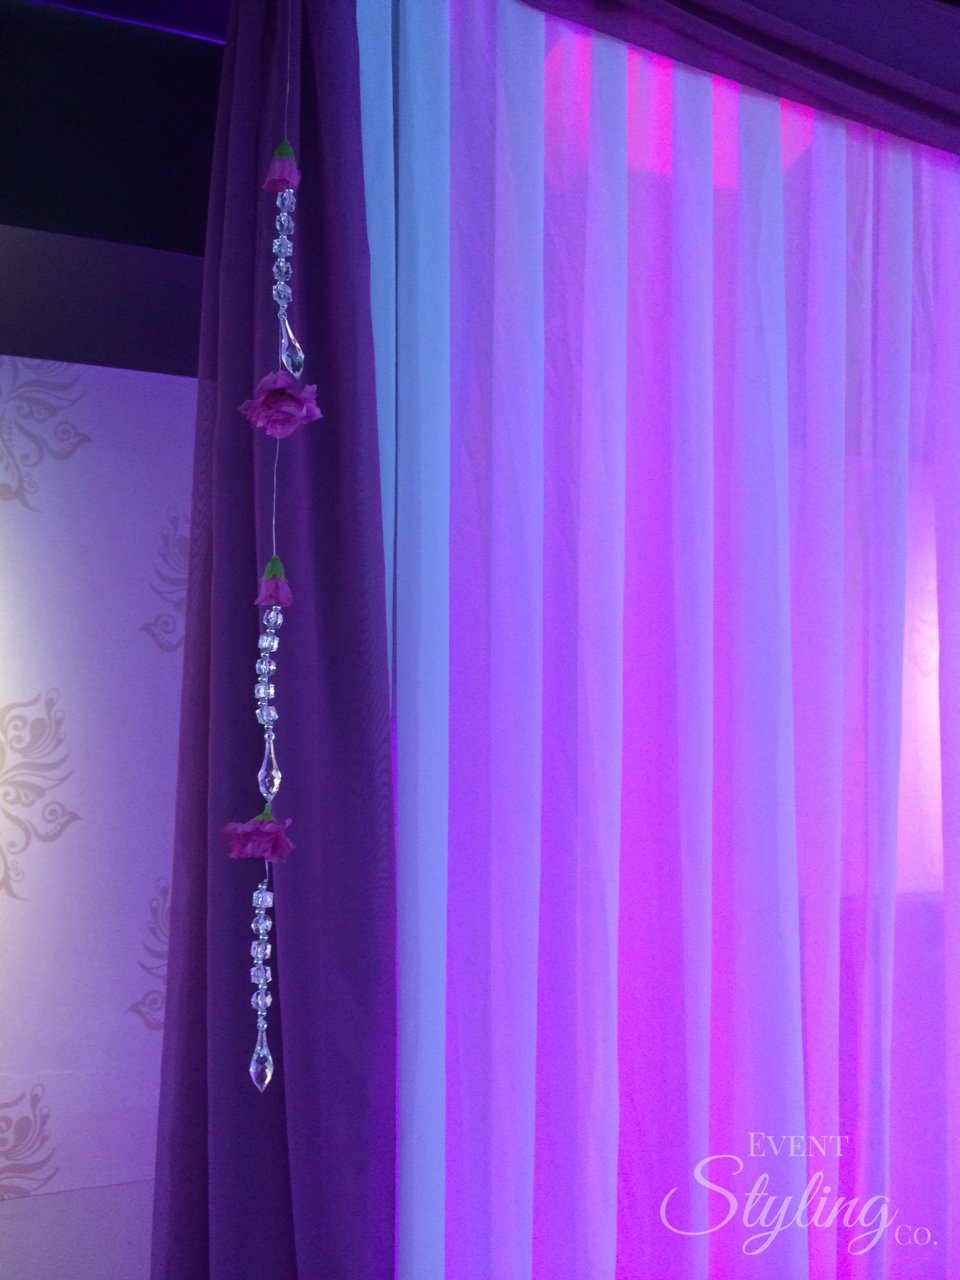 Bespoke purple wall drapes and event lighting at Bollywood restaurant Auckland